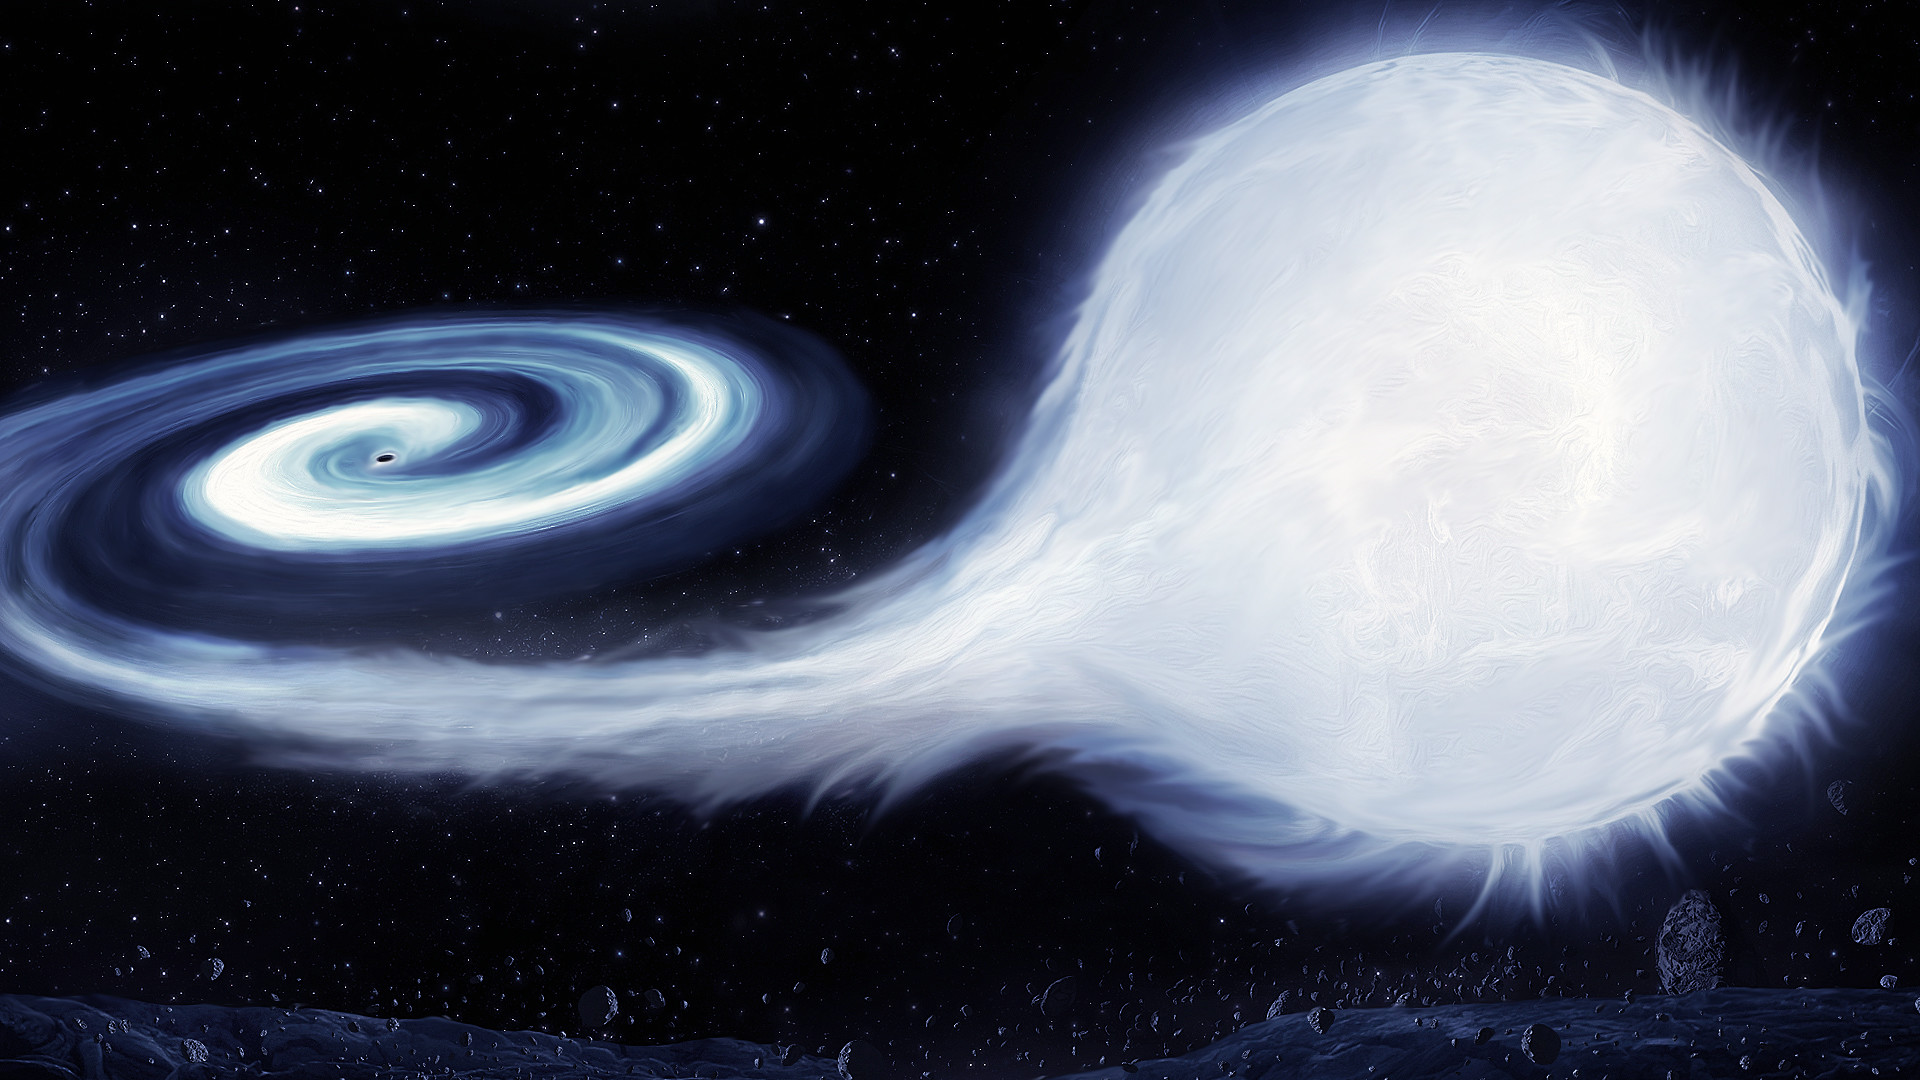 Res: 1920x1080, free black hole picture hd wallpapers windows apple artworks high  definition samsung wallpapers wallpaper for iphone free 1920×1080 Wallpaper  HD